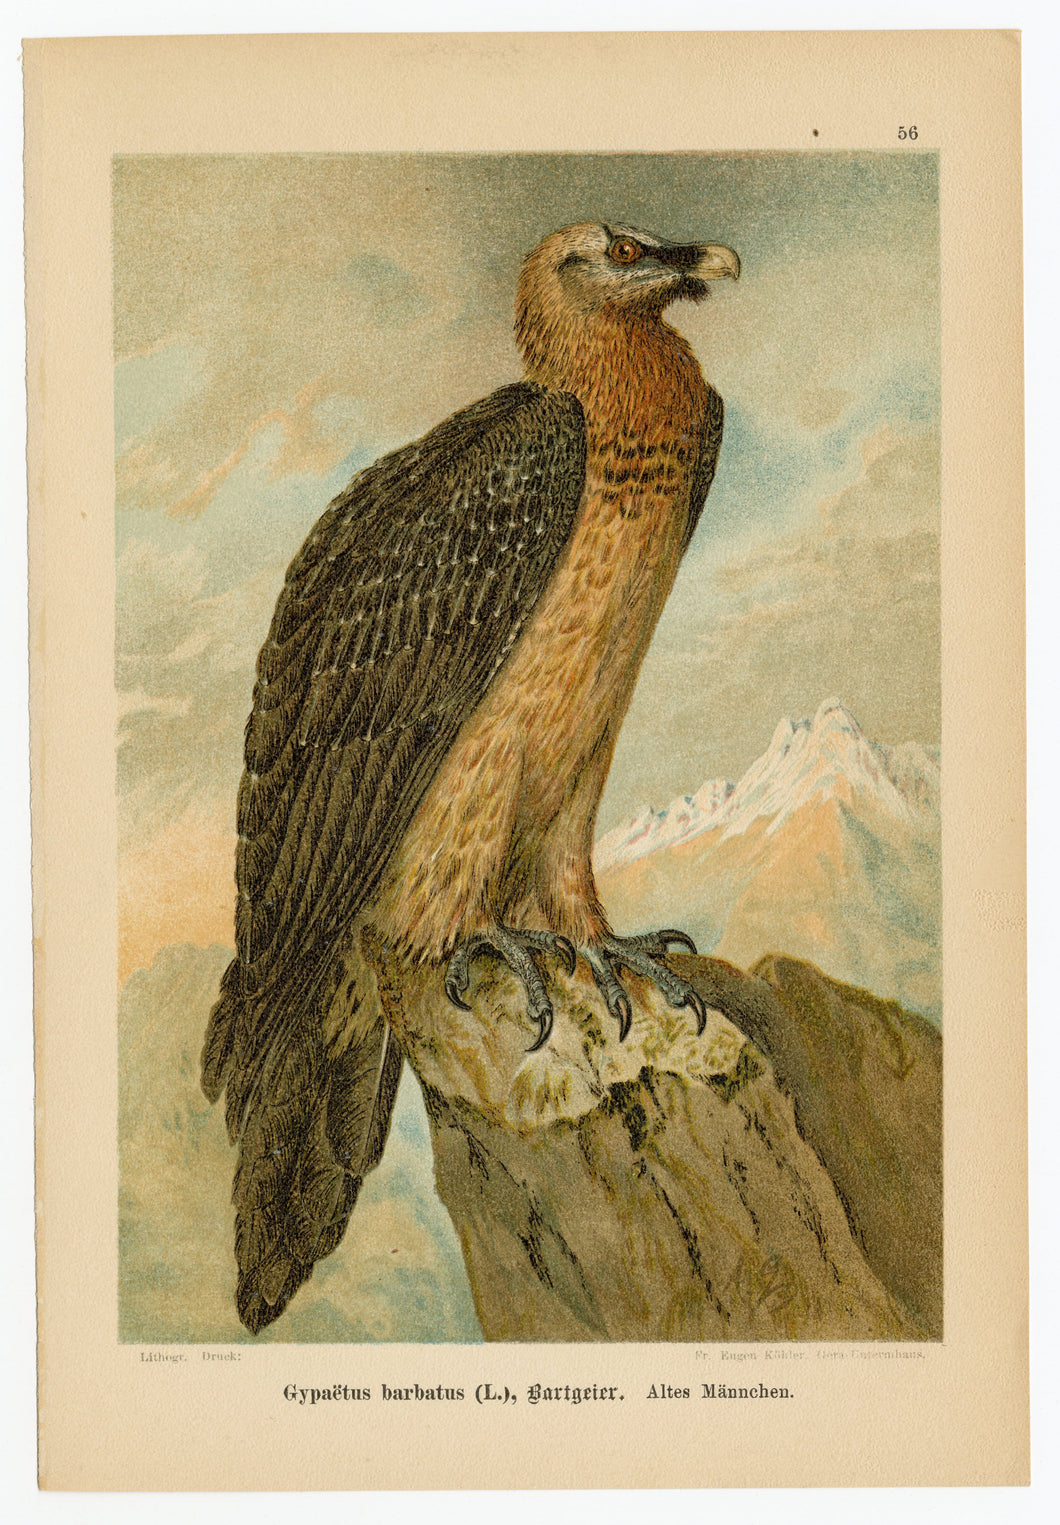 1905 Antique Scientific Lithographic Print || Bearded Vulture, Bird